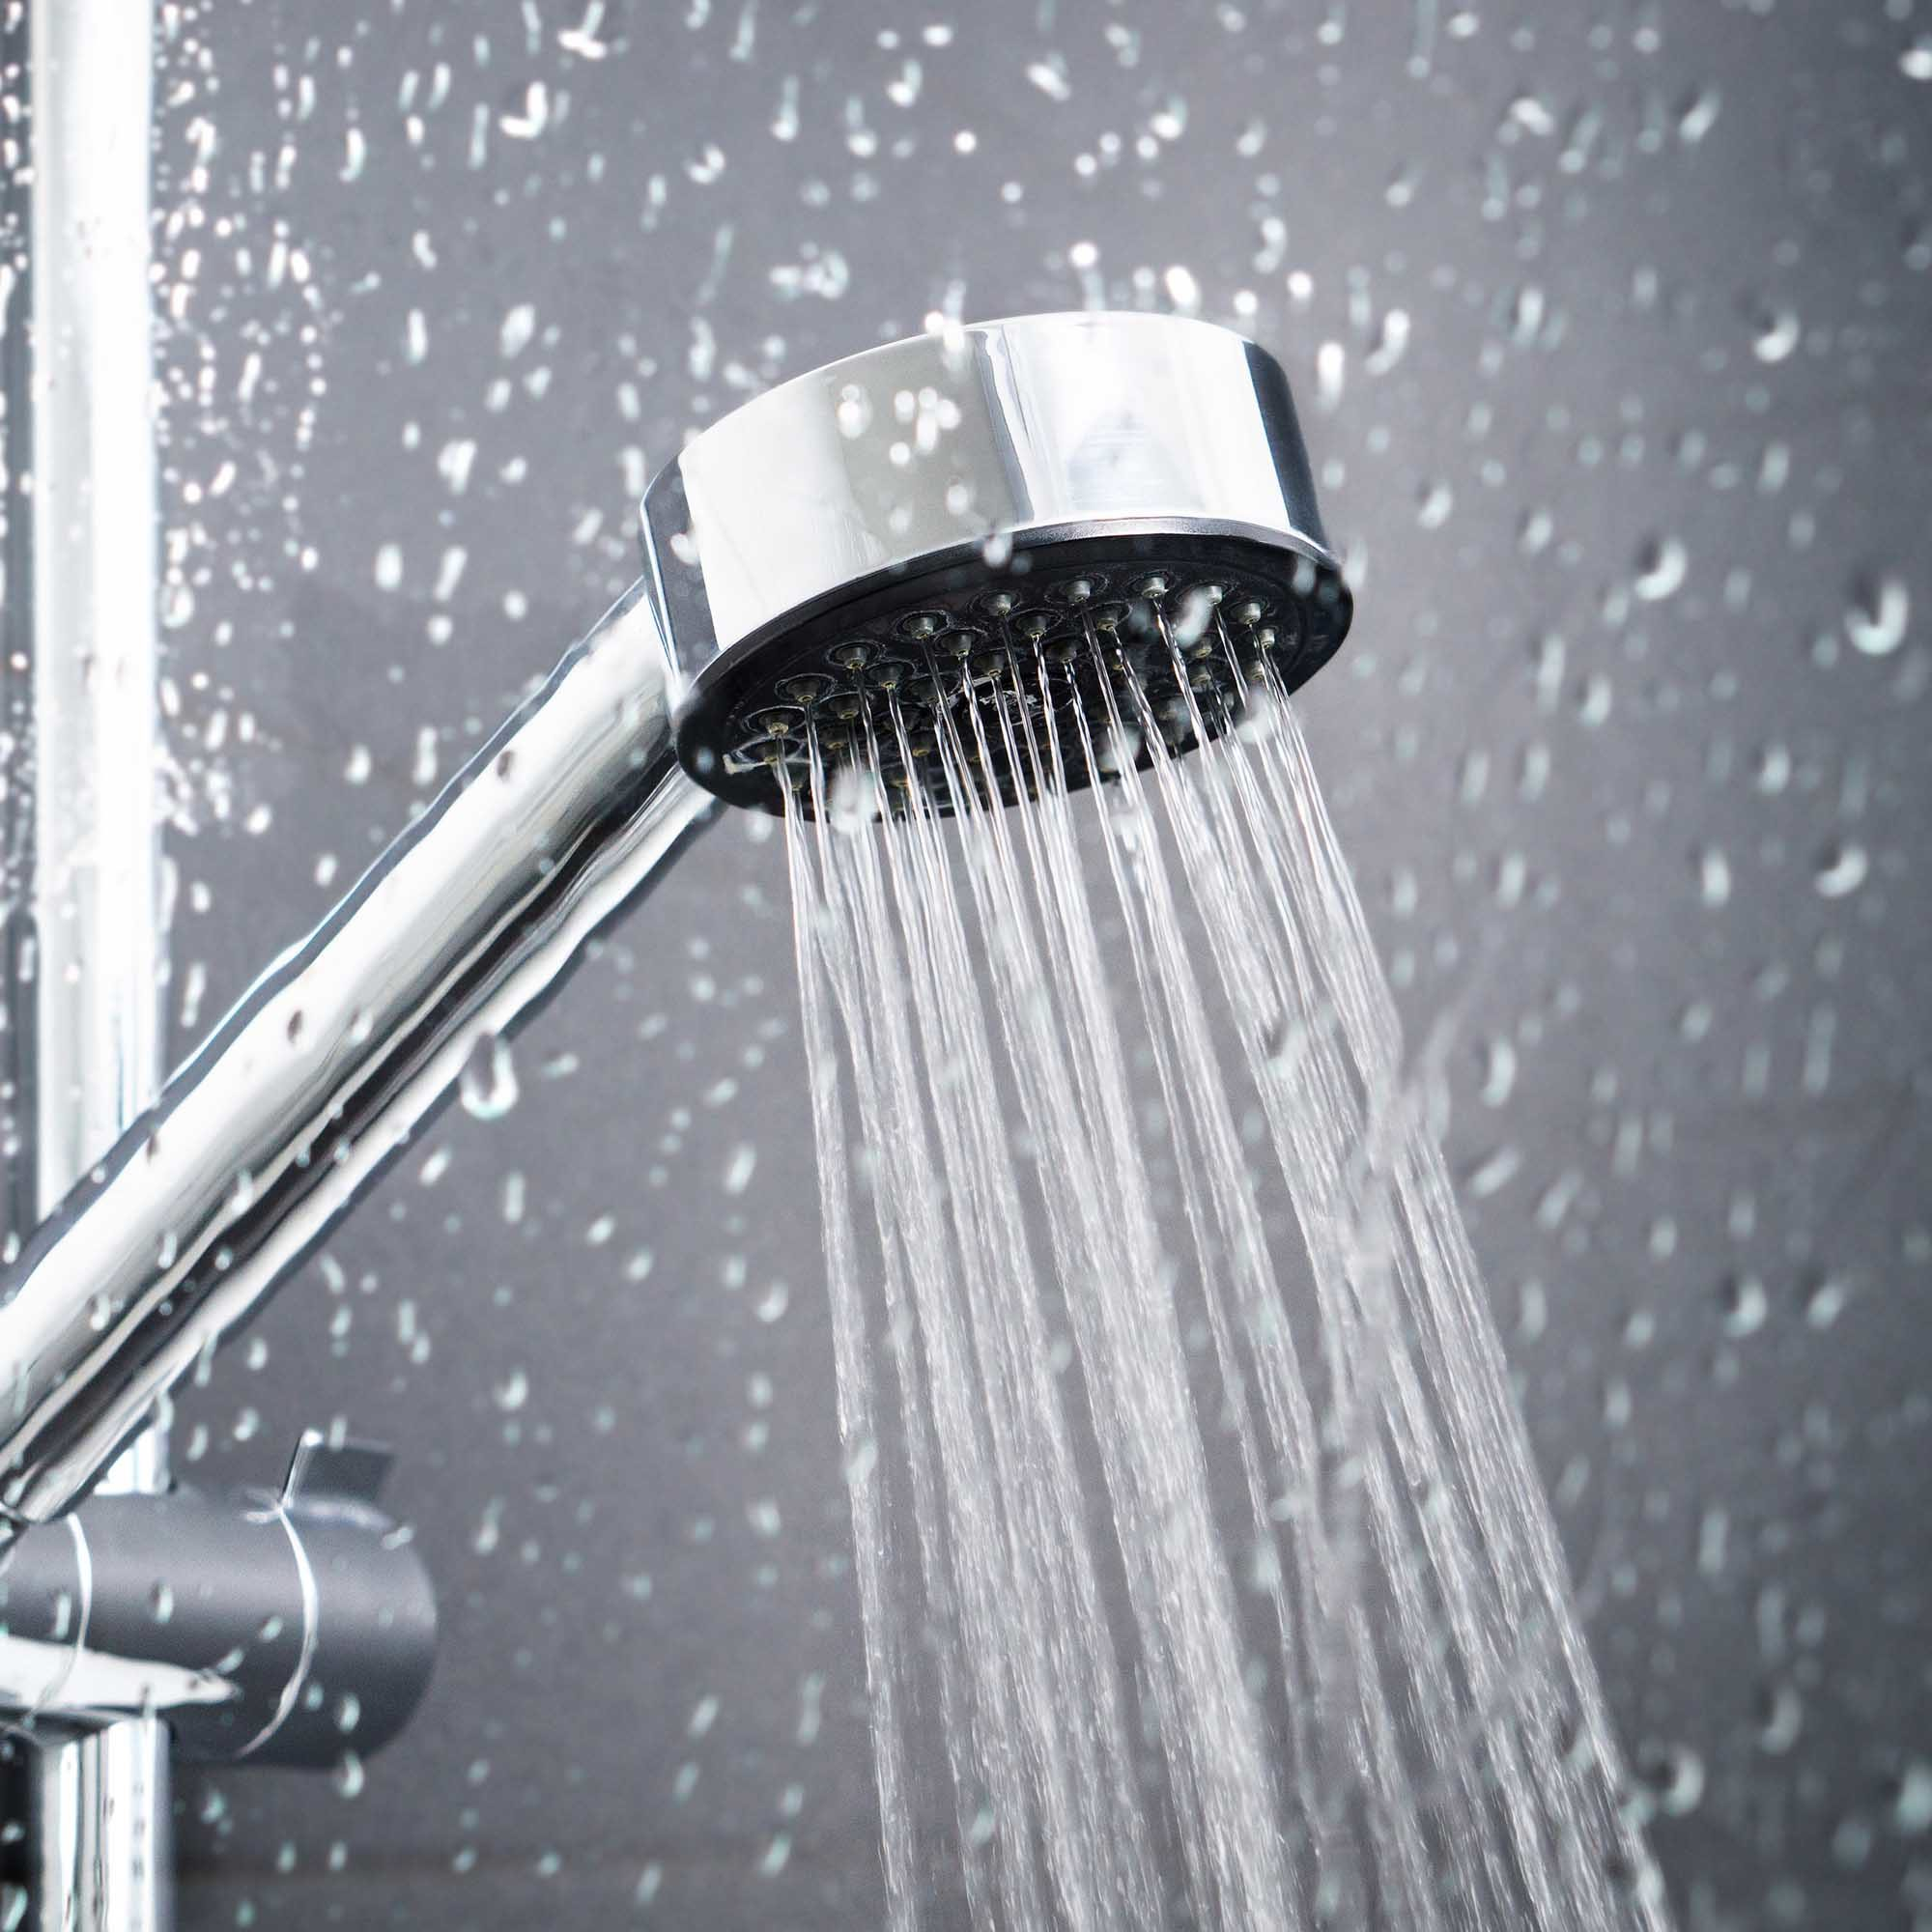 we offer bathroom appliance plumbing including showers, basins, sinks, toilets, baths and more